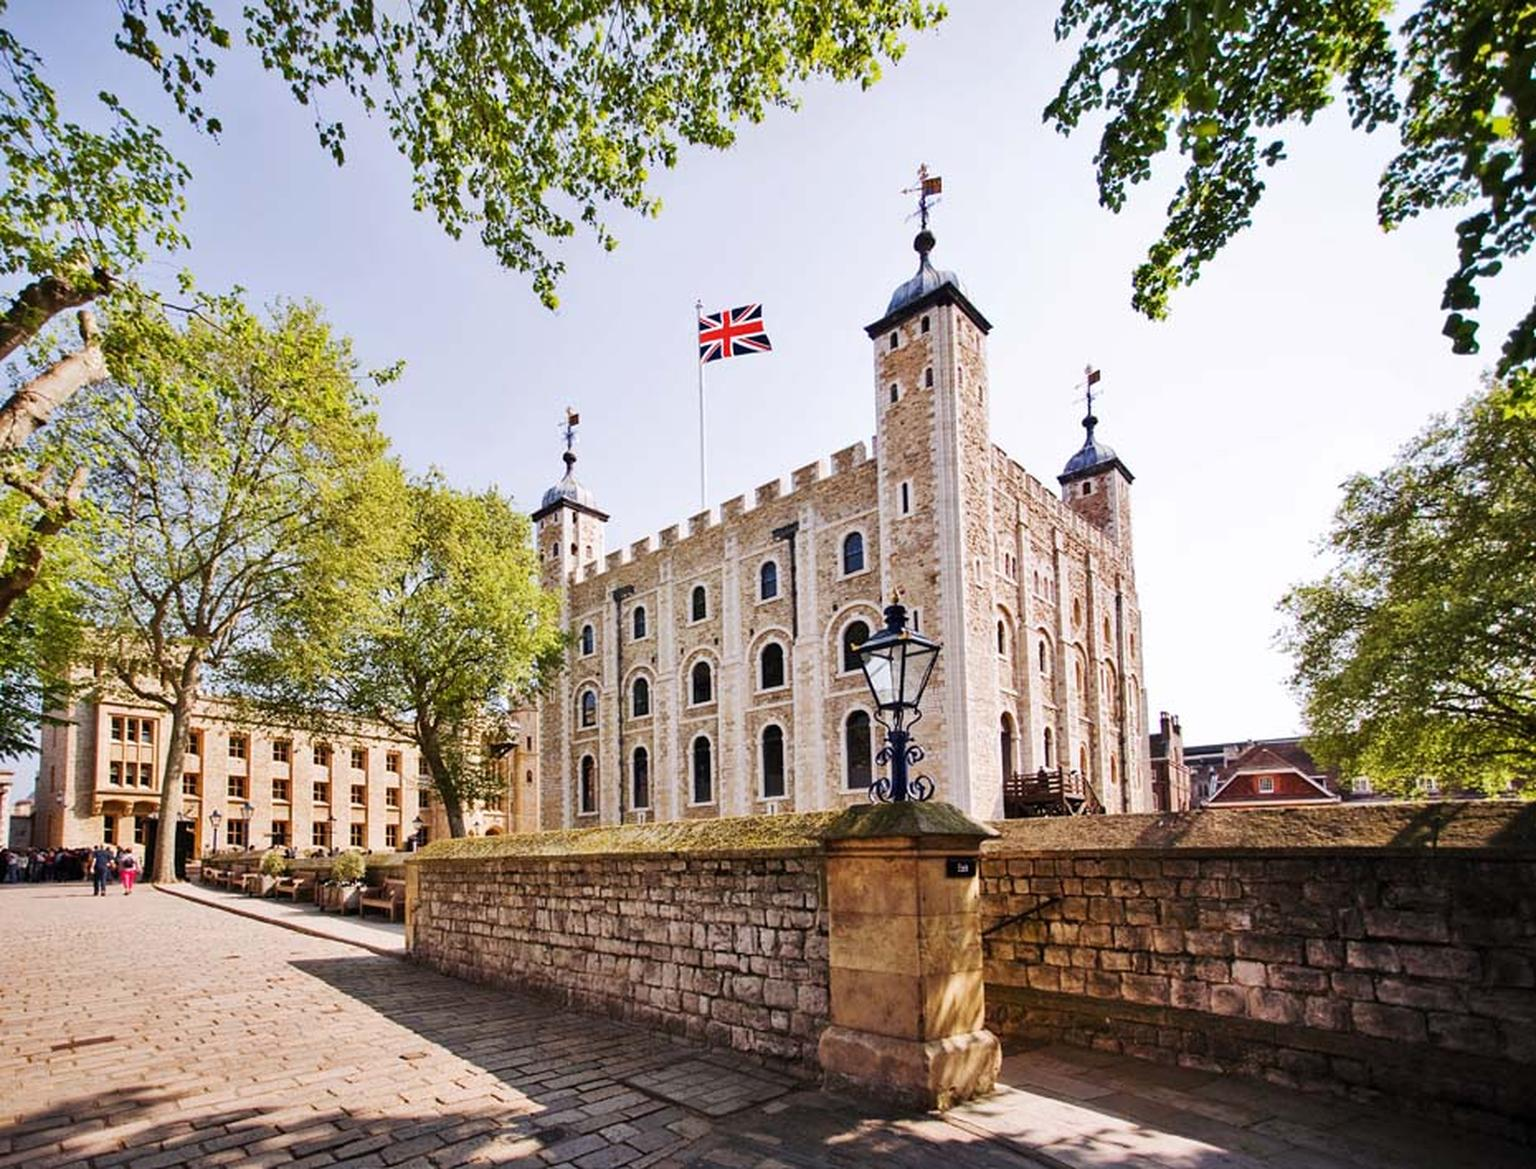 Christie's Jewels of London Tour, which includes a private viewing of the Crown Jewels at the Tower of London, costs from £3,400 per person and includes overnight stays, local group transportation and most meals.